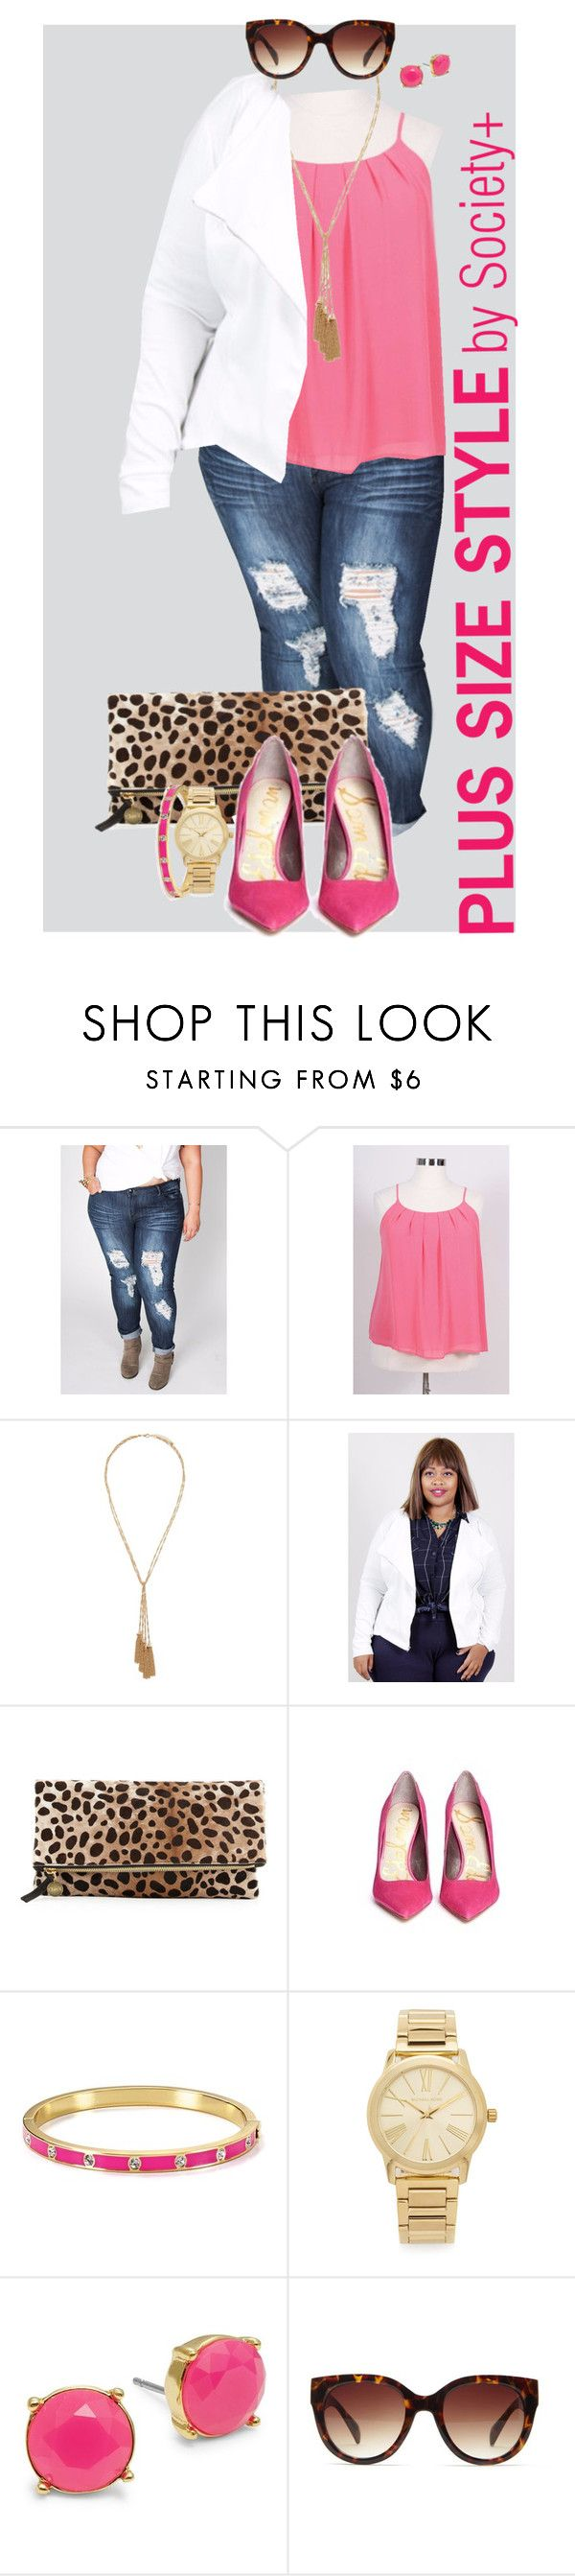 """Plus Size Flowy Top - Society+"" by iamsocietyplus on Polyvore featuring Forever 21, Clare V., Sam Edelman, Kate Spade, Michael Kors, Trina Turk, plussize, plussizefashion, societyplus and iamsocietyplus"